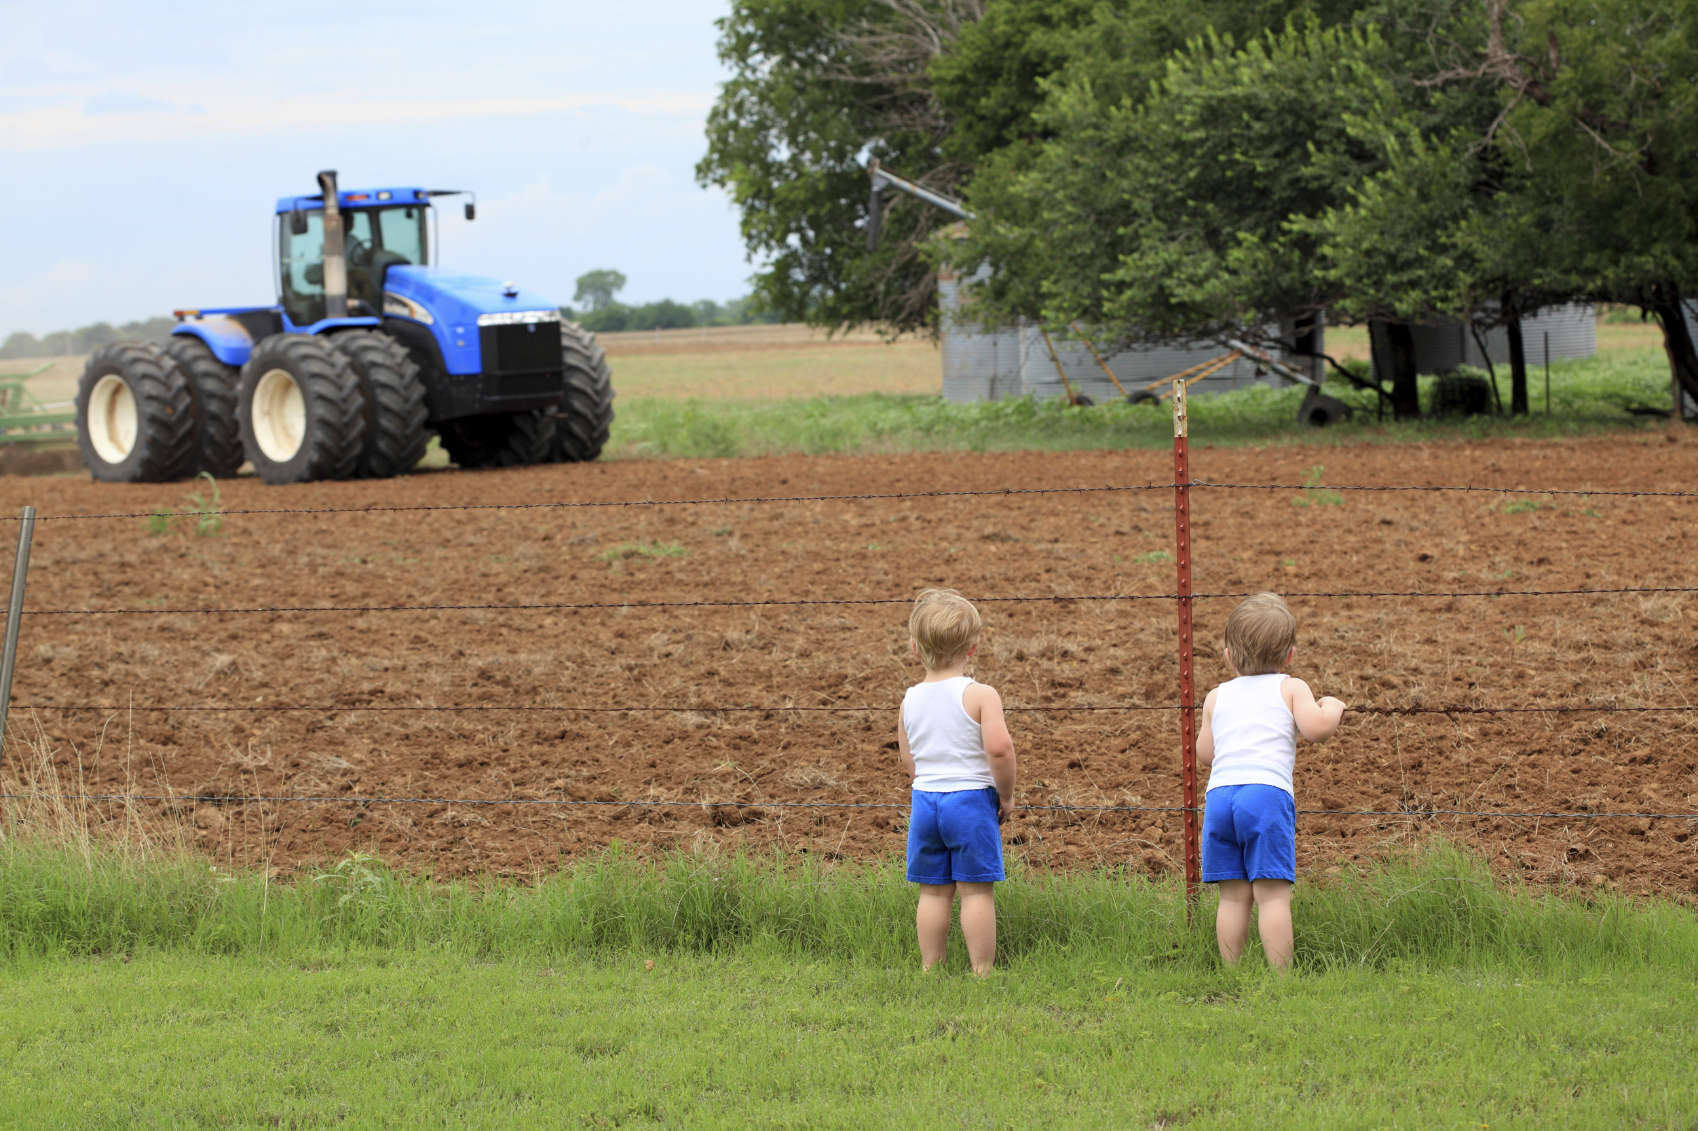 Children watching tractor_7630